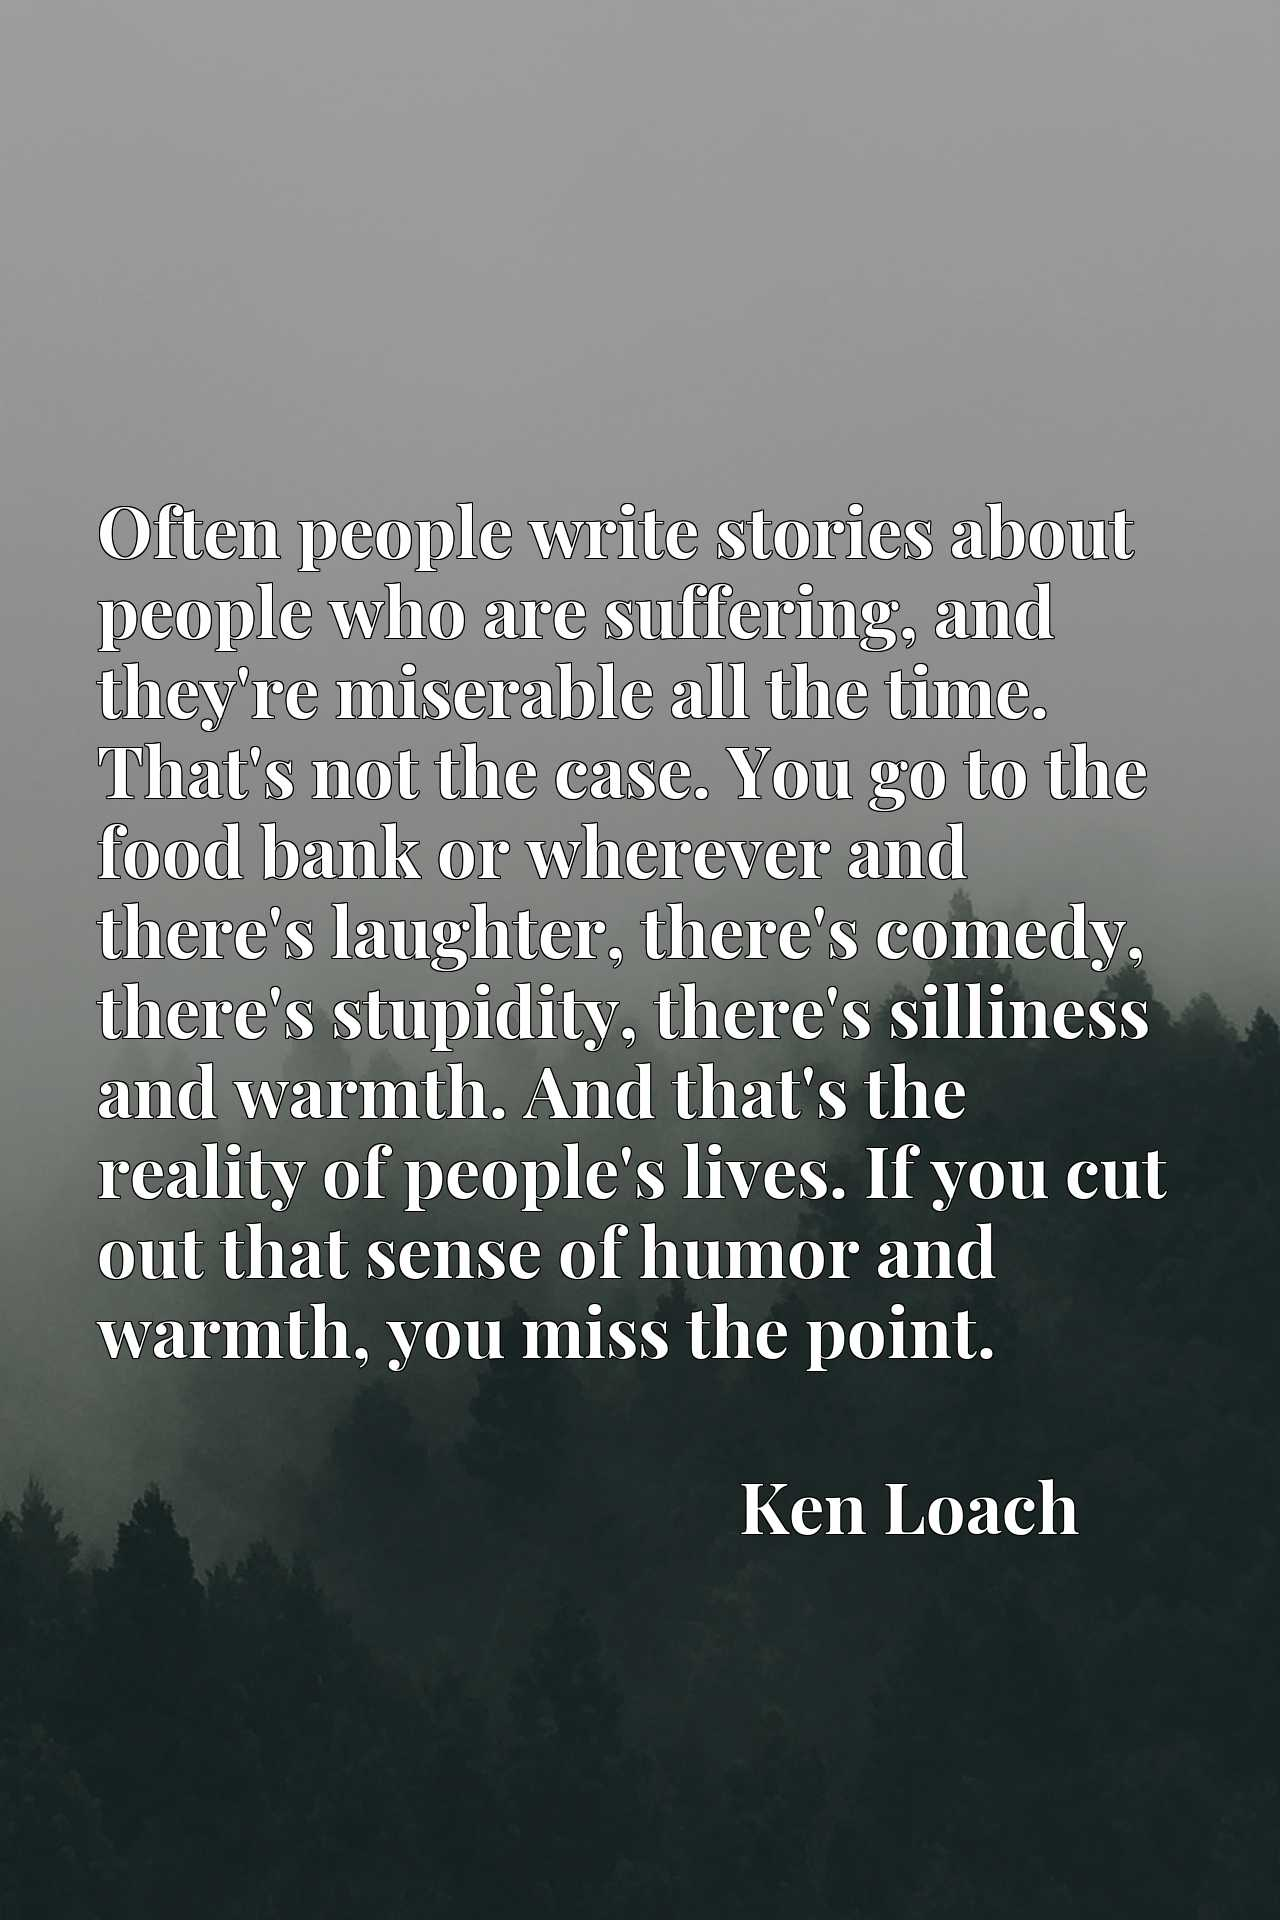 Often people write stories about people who are suffering, and they're miserable all the time. That's not the case. You go to the food bank or wherever and there's laughter, there's comedy, there's stupidity, there's silliness and warmth. And that's the reality of people's lives. If you cut out that sense of humor and warmth, you miss the point.